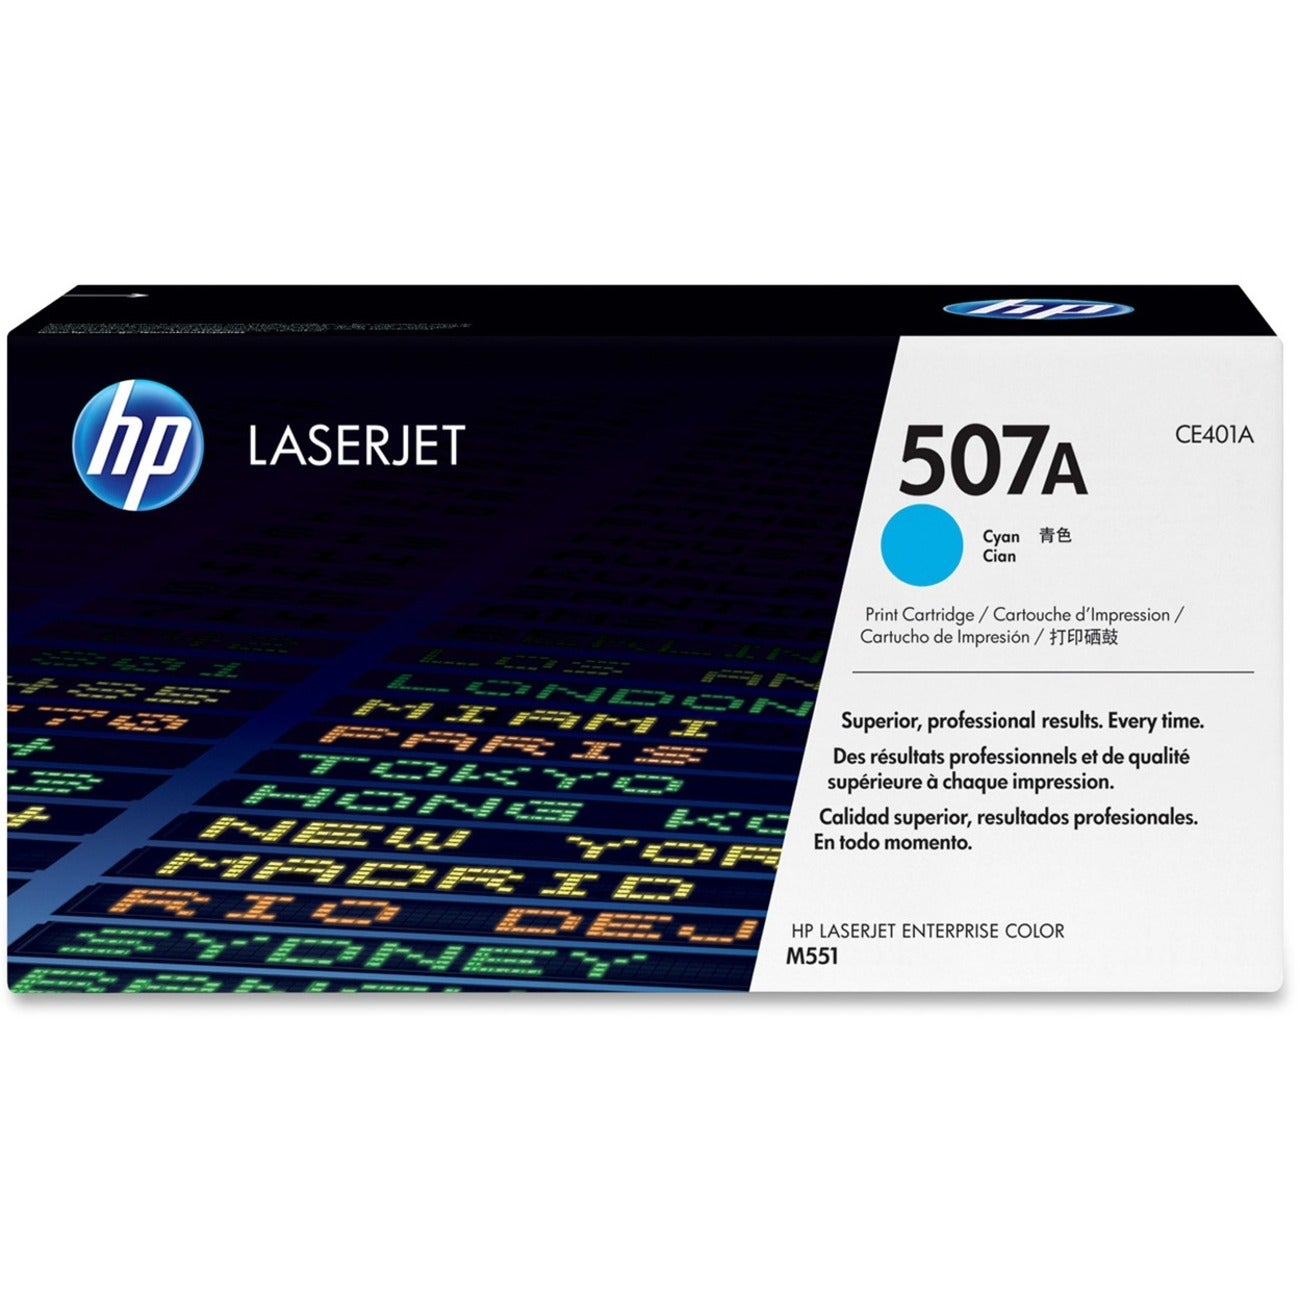 HP 507A Toner Cartridge - Cyan